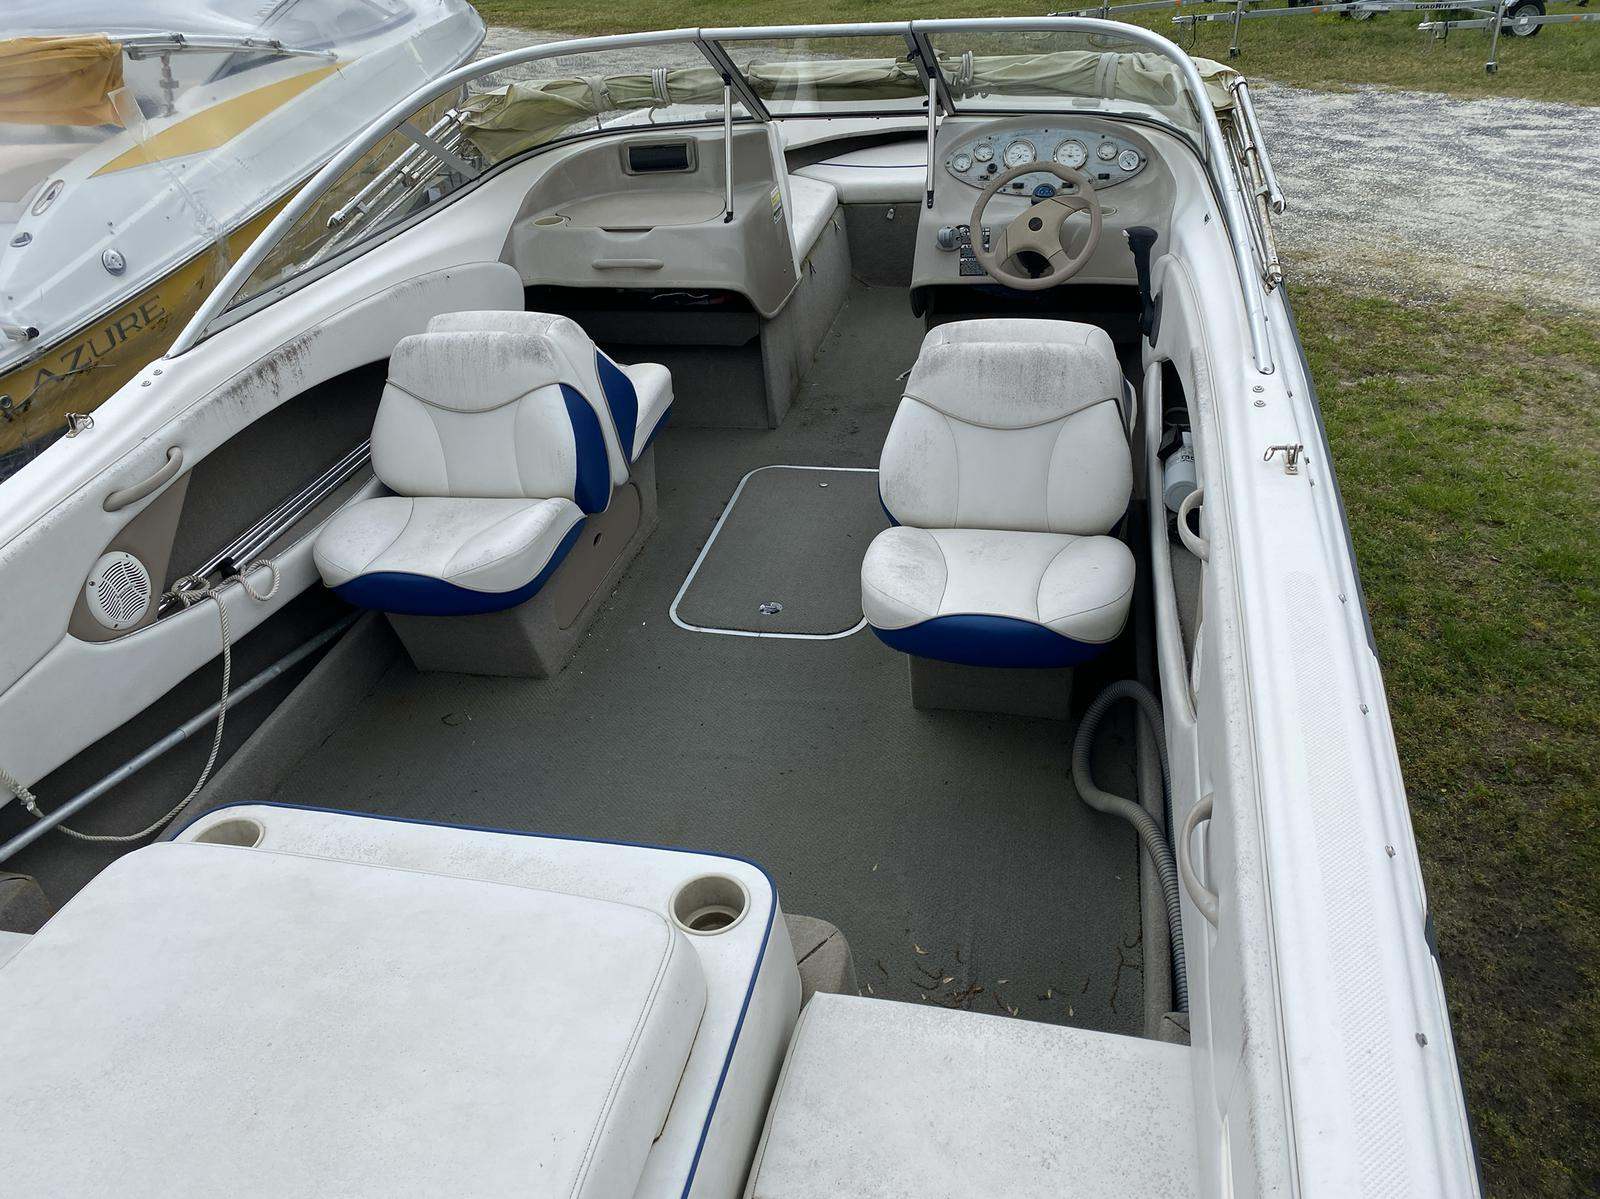 2004 Bayliner boat for sale, model of the boat is 215BR Classic21 & Image # 6 of 9